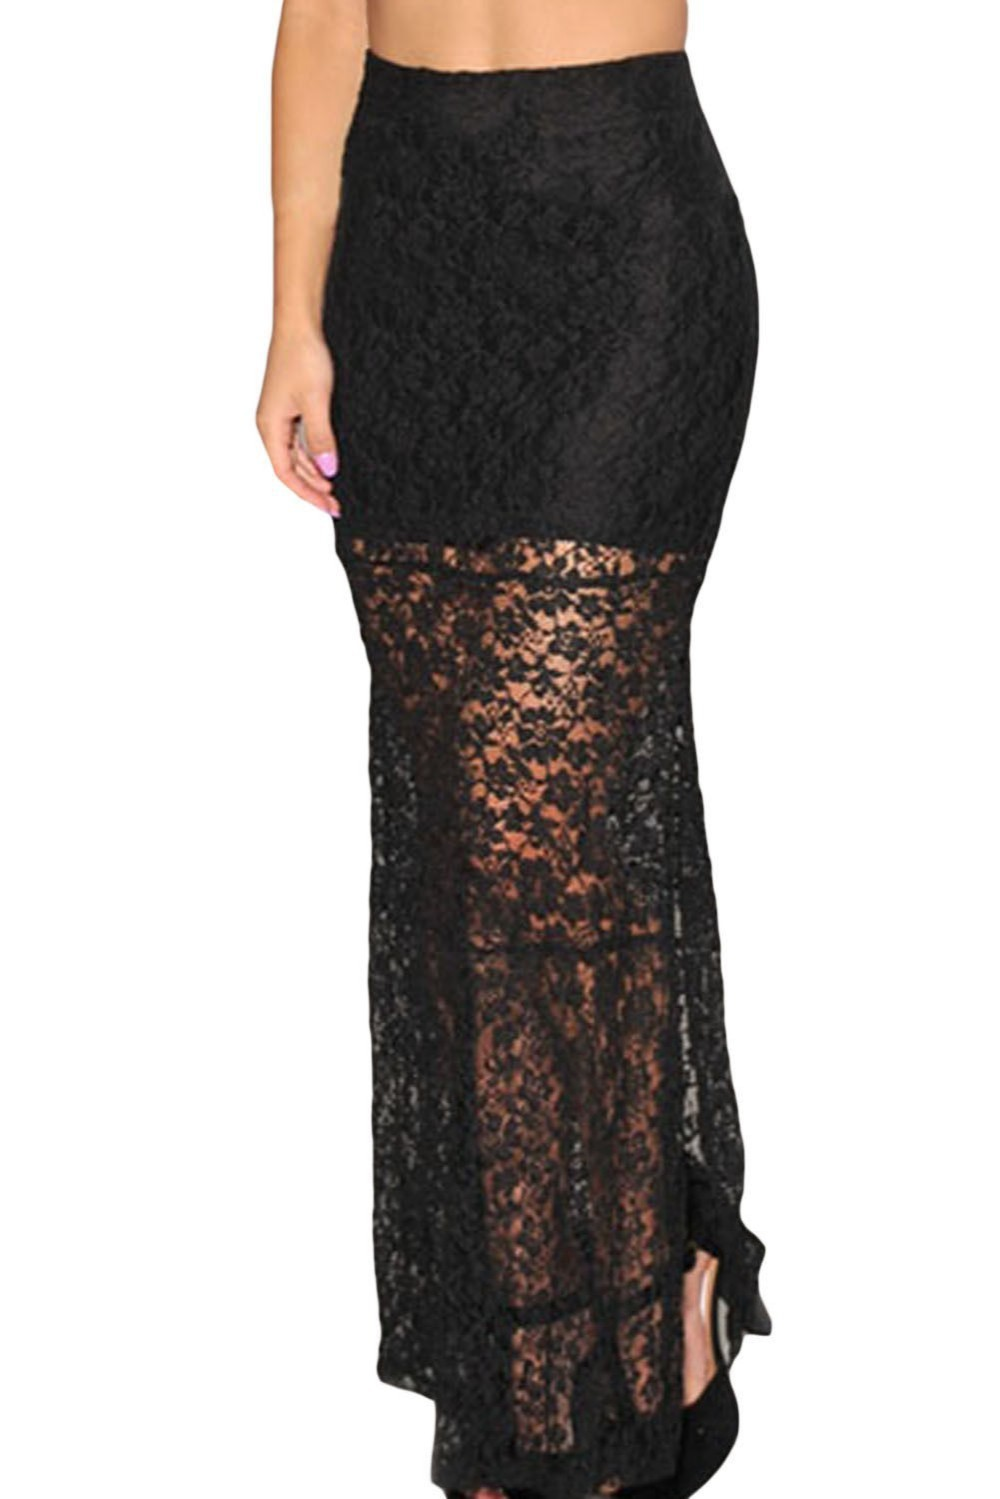 Find great deals on eBay for pencil skirt lace. Shop with confidence.